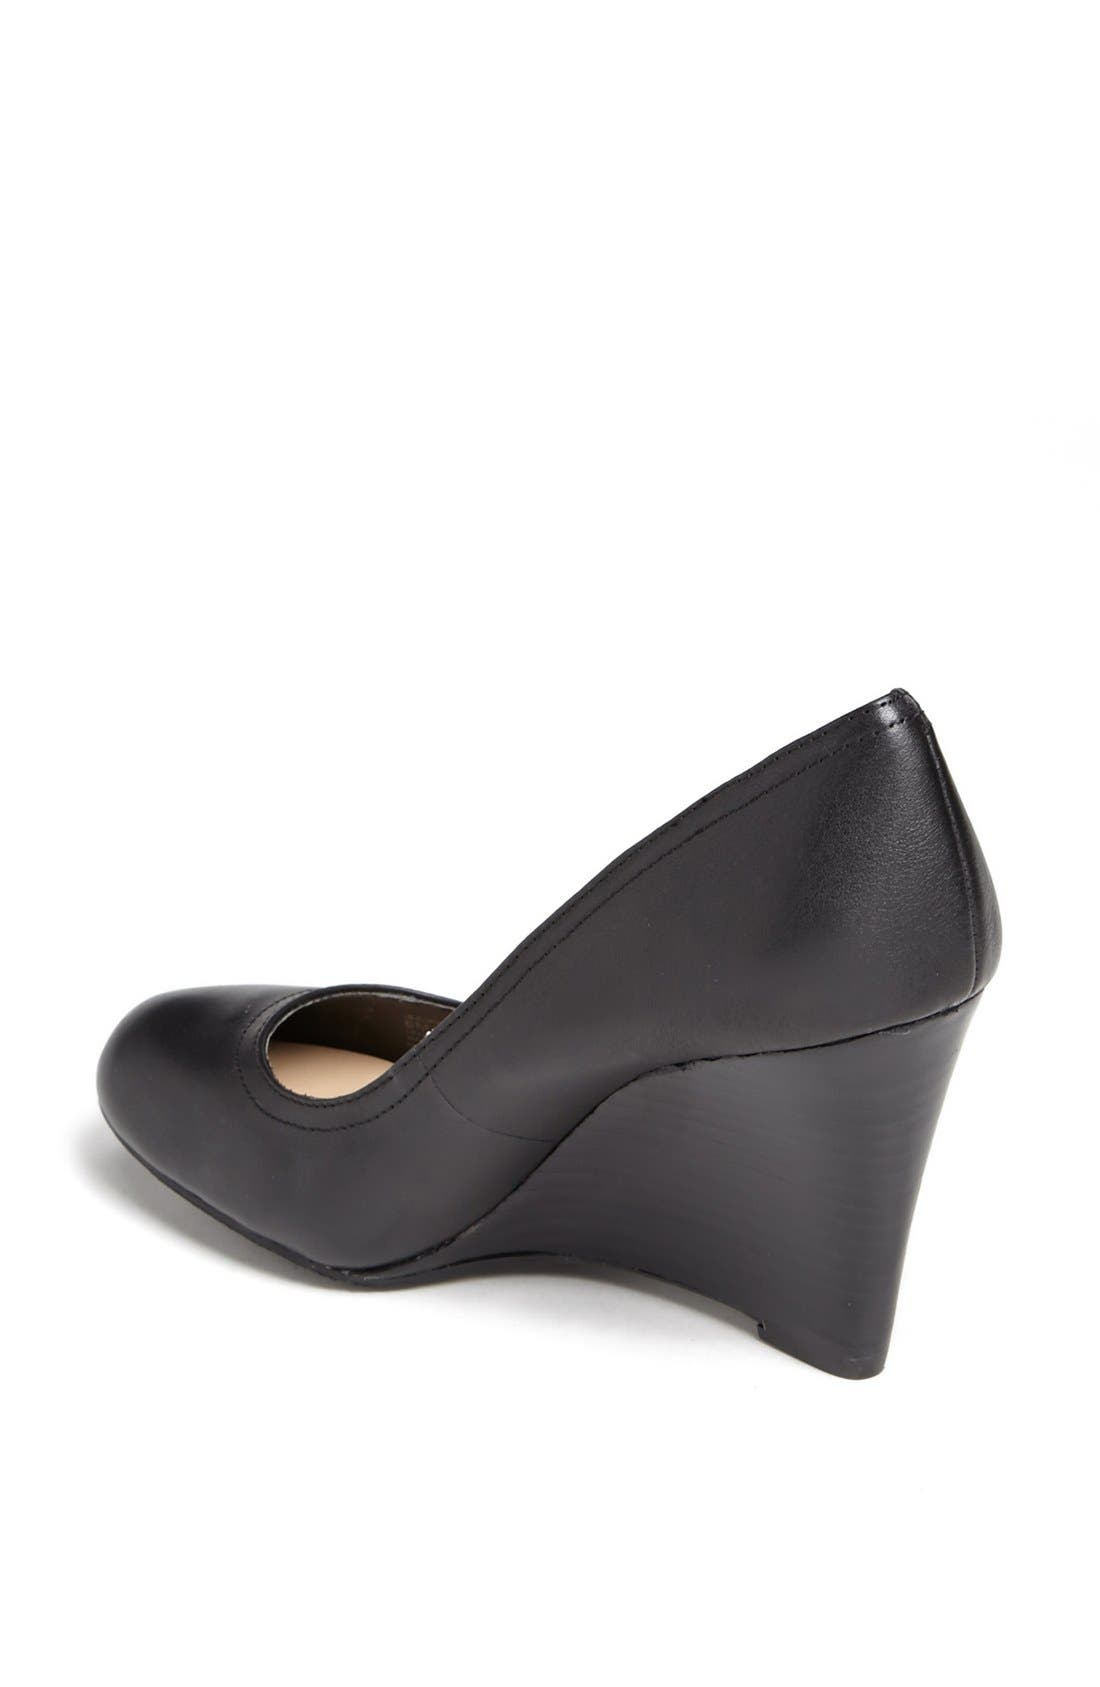 Alternate Image 2  - Jessica Simpson 'Capri' Pump